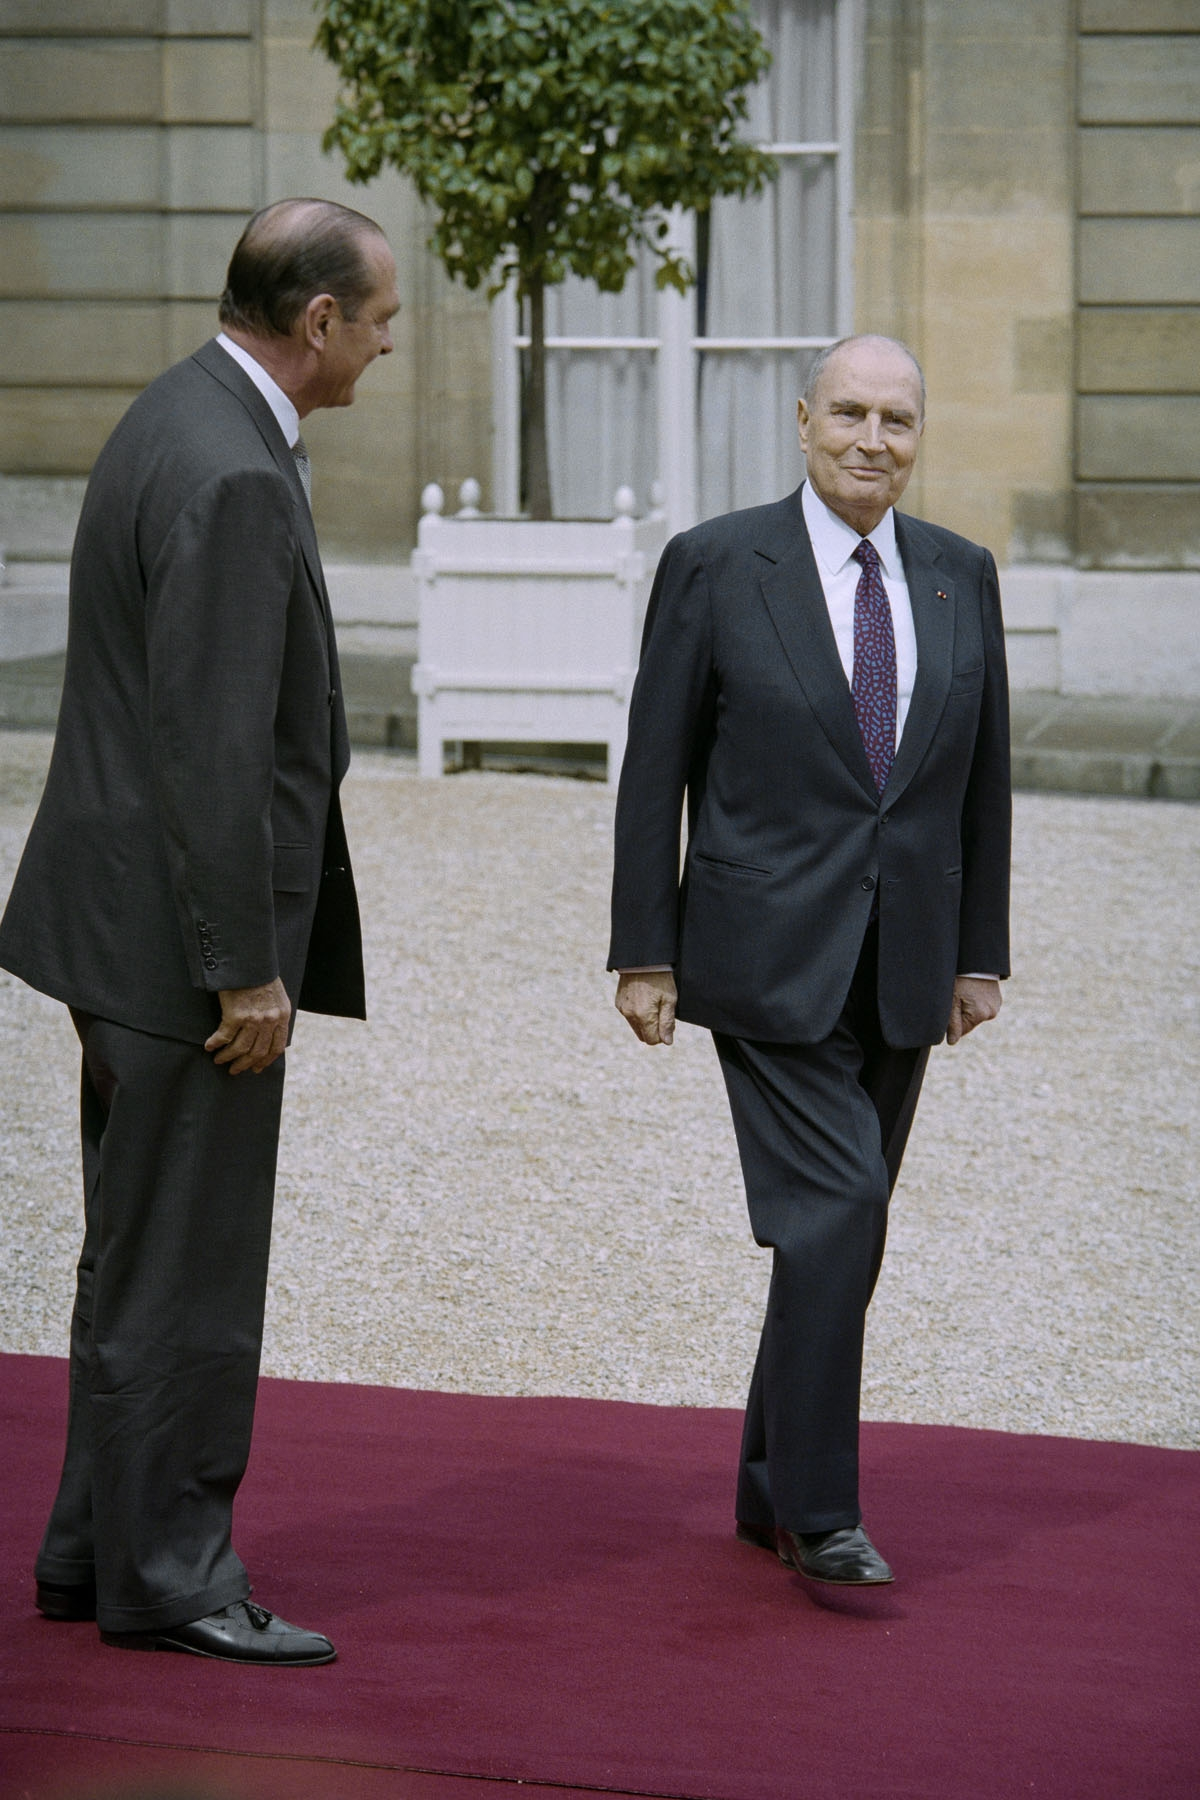 French outgoing President Francois Mitterrand (R) is escorted by his successor Jacques Chirac as he leaves the Elysee Palace during the formal handover of power ceremony on May 17, 1995 in Paris.